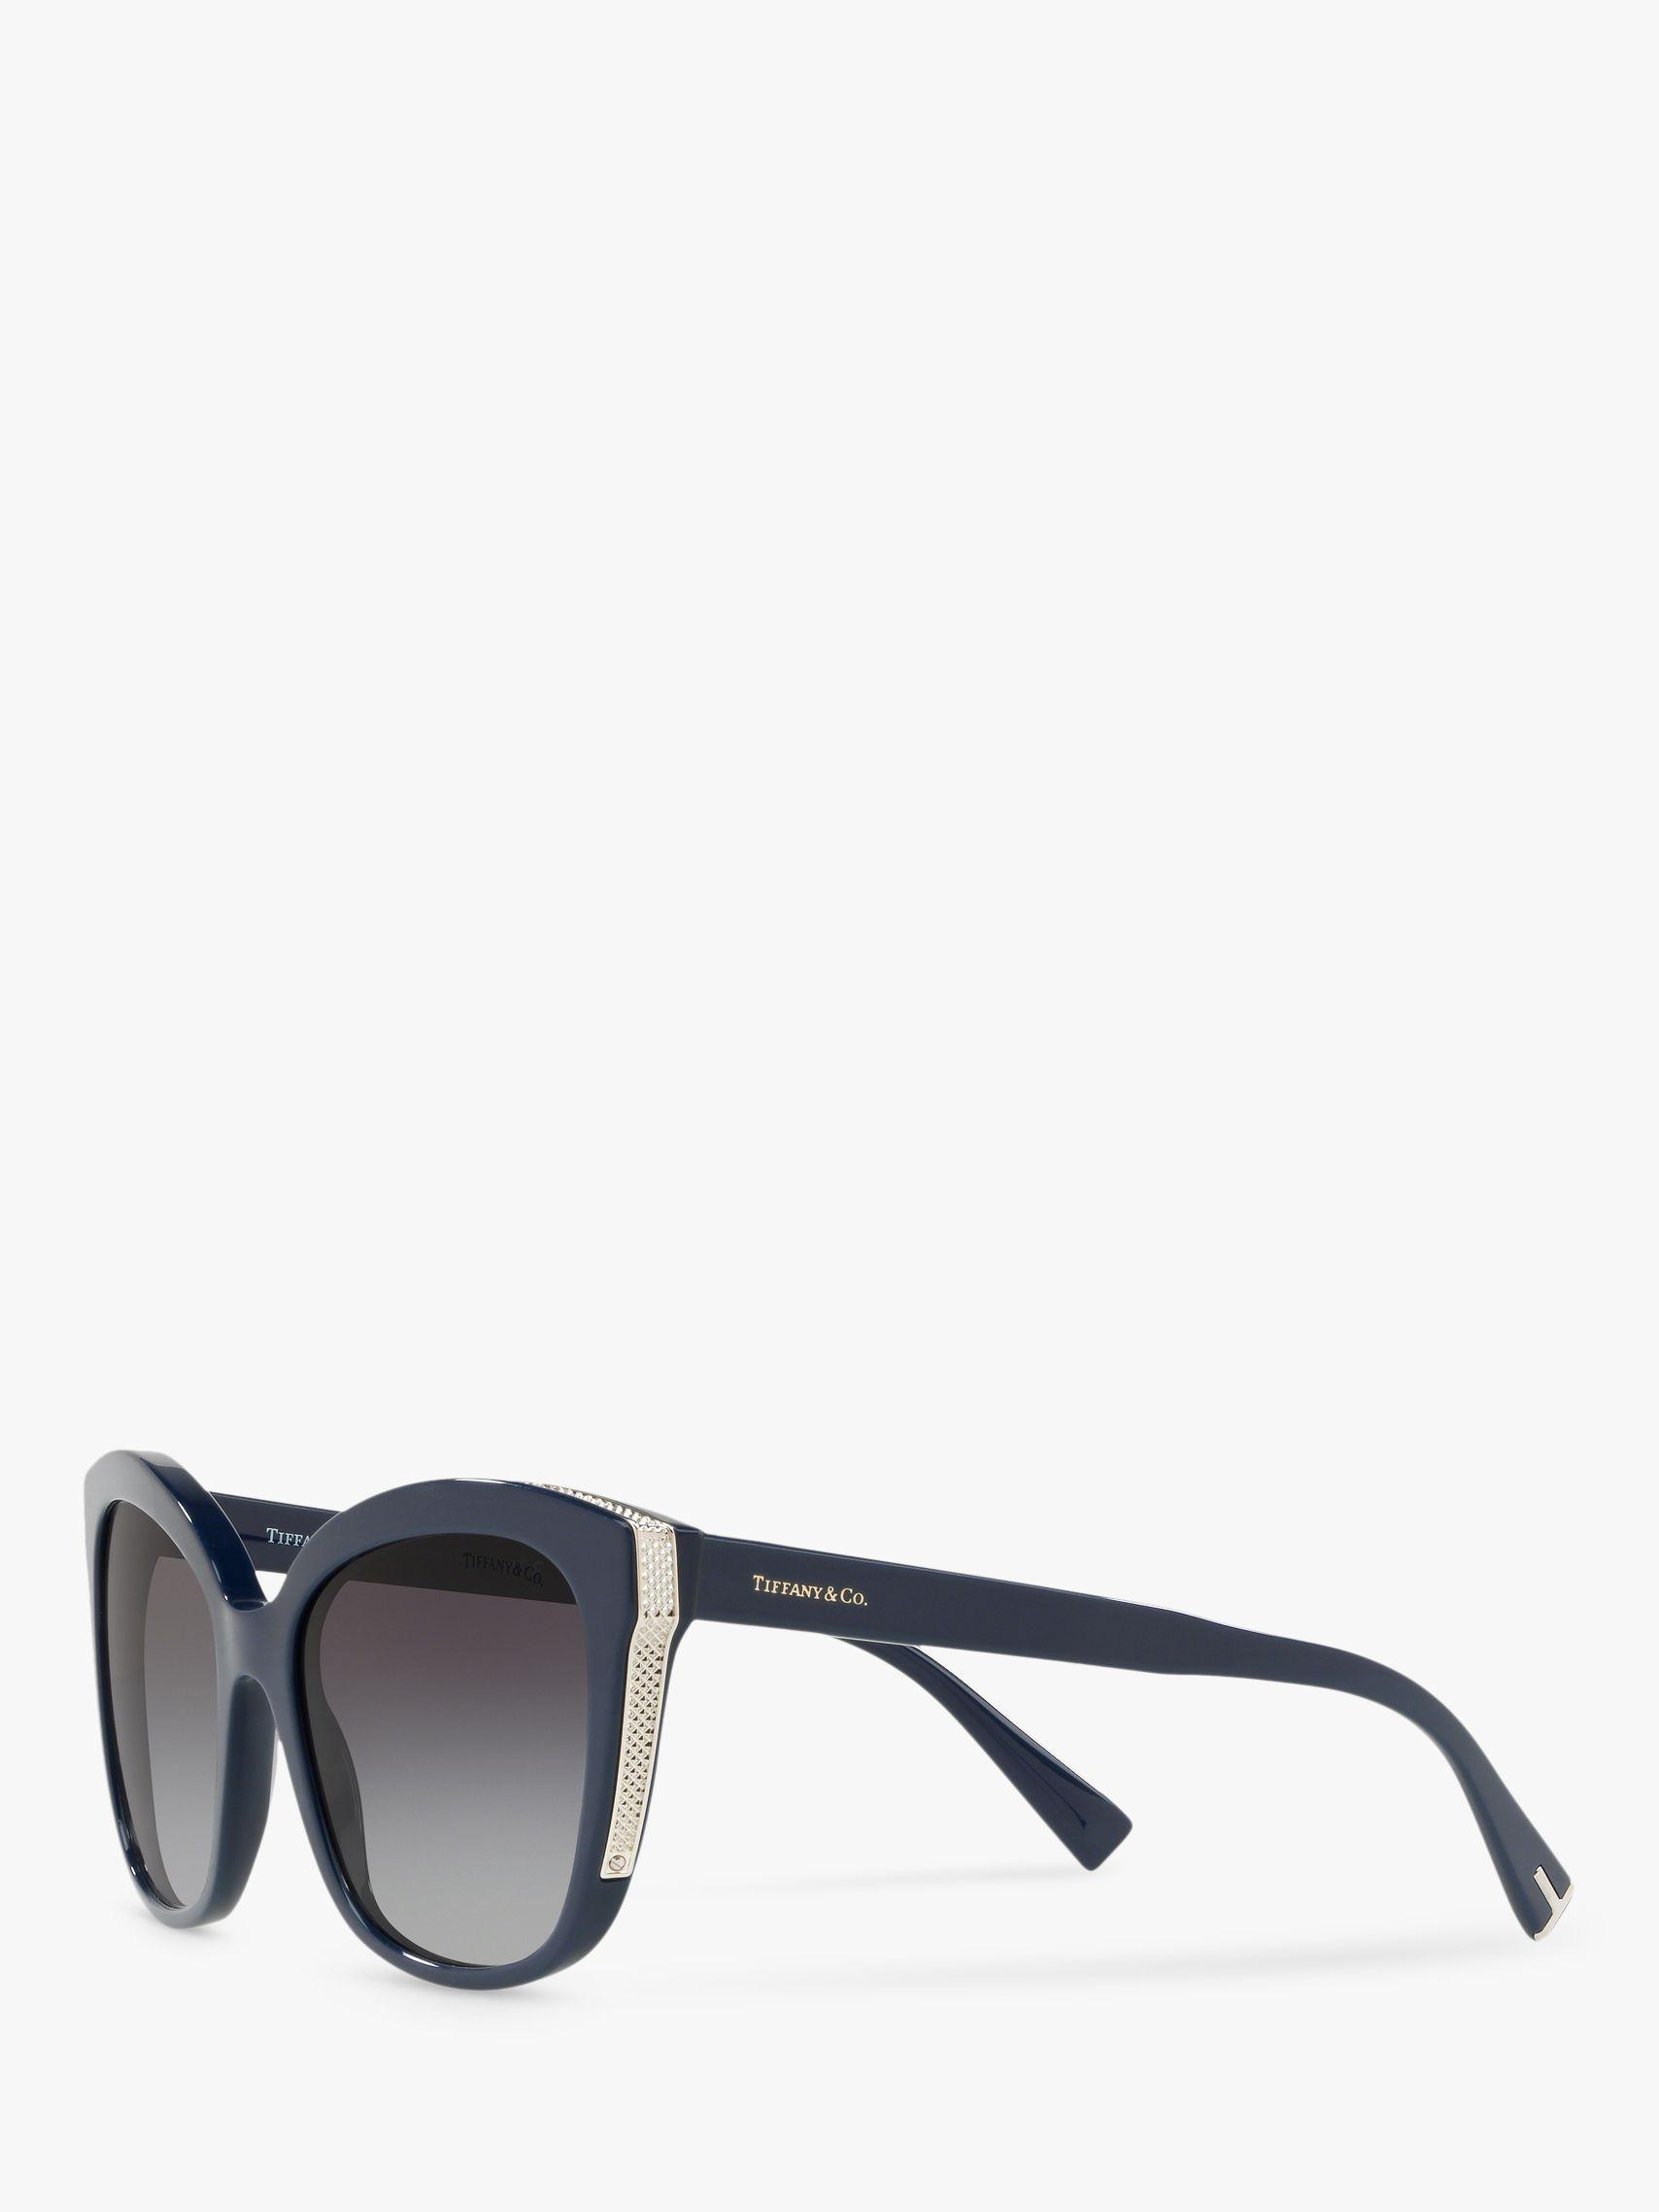 c939e38d464 Tiffany   Co. Tf4150 Women s Embellished Square Sunglasses in Blue ...